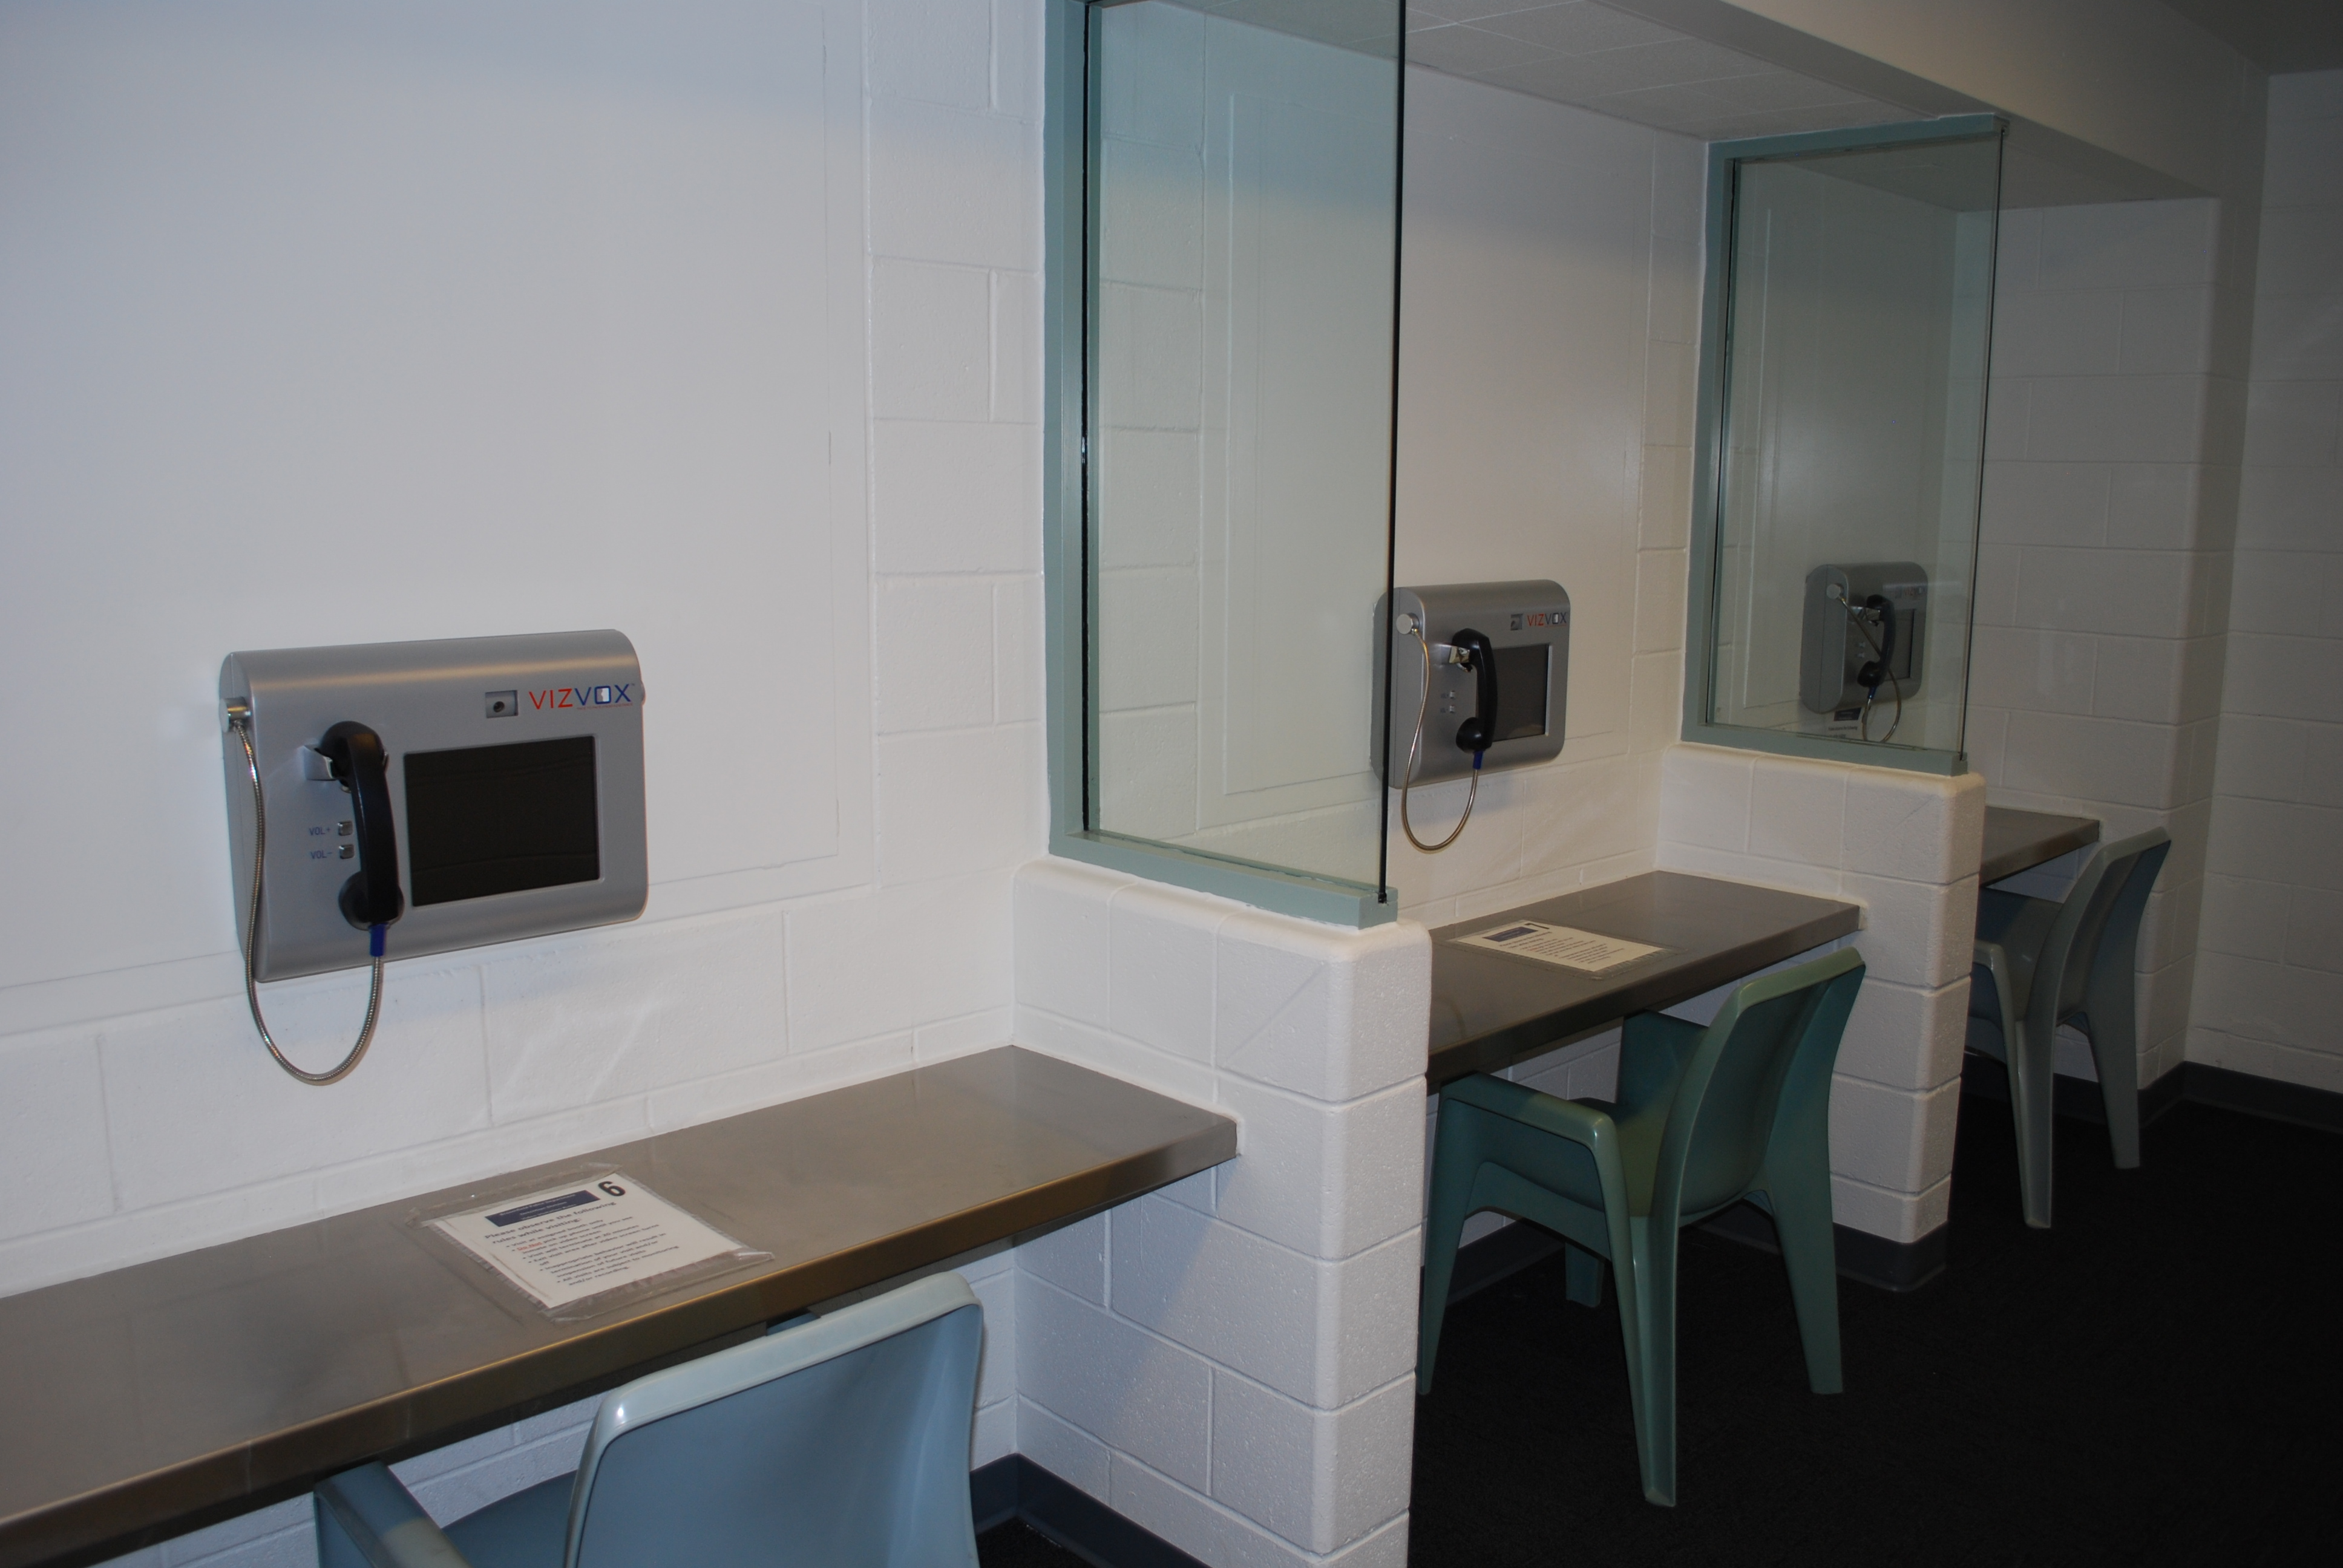 Video Visitation Room